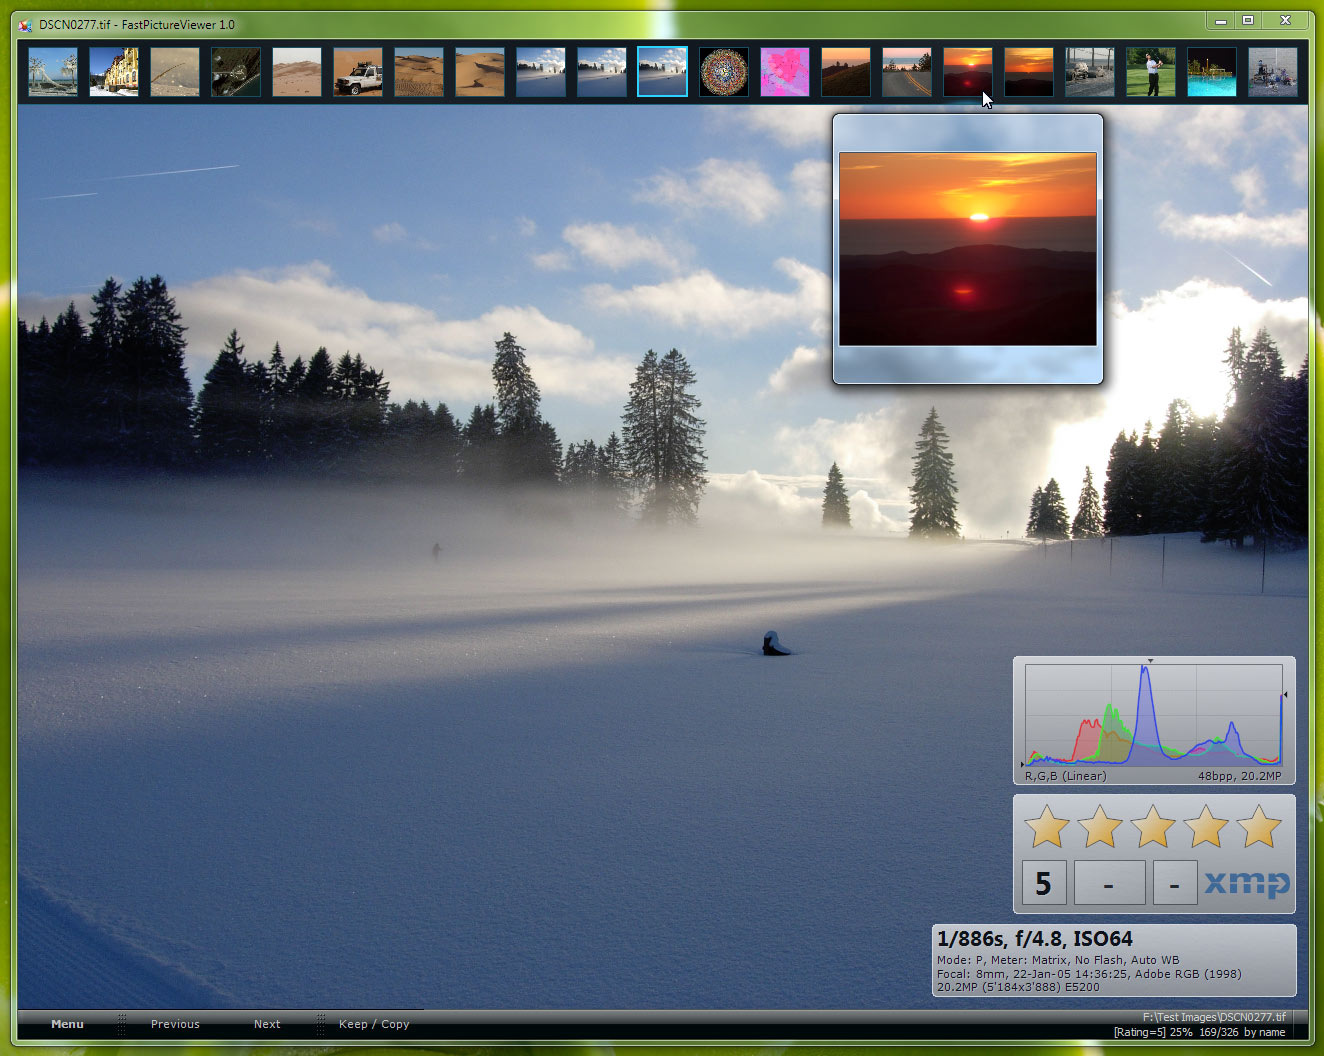 Fastpictureviewer download free